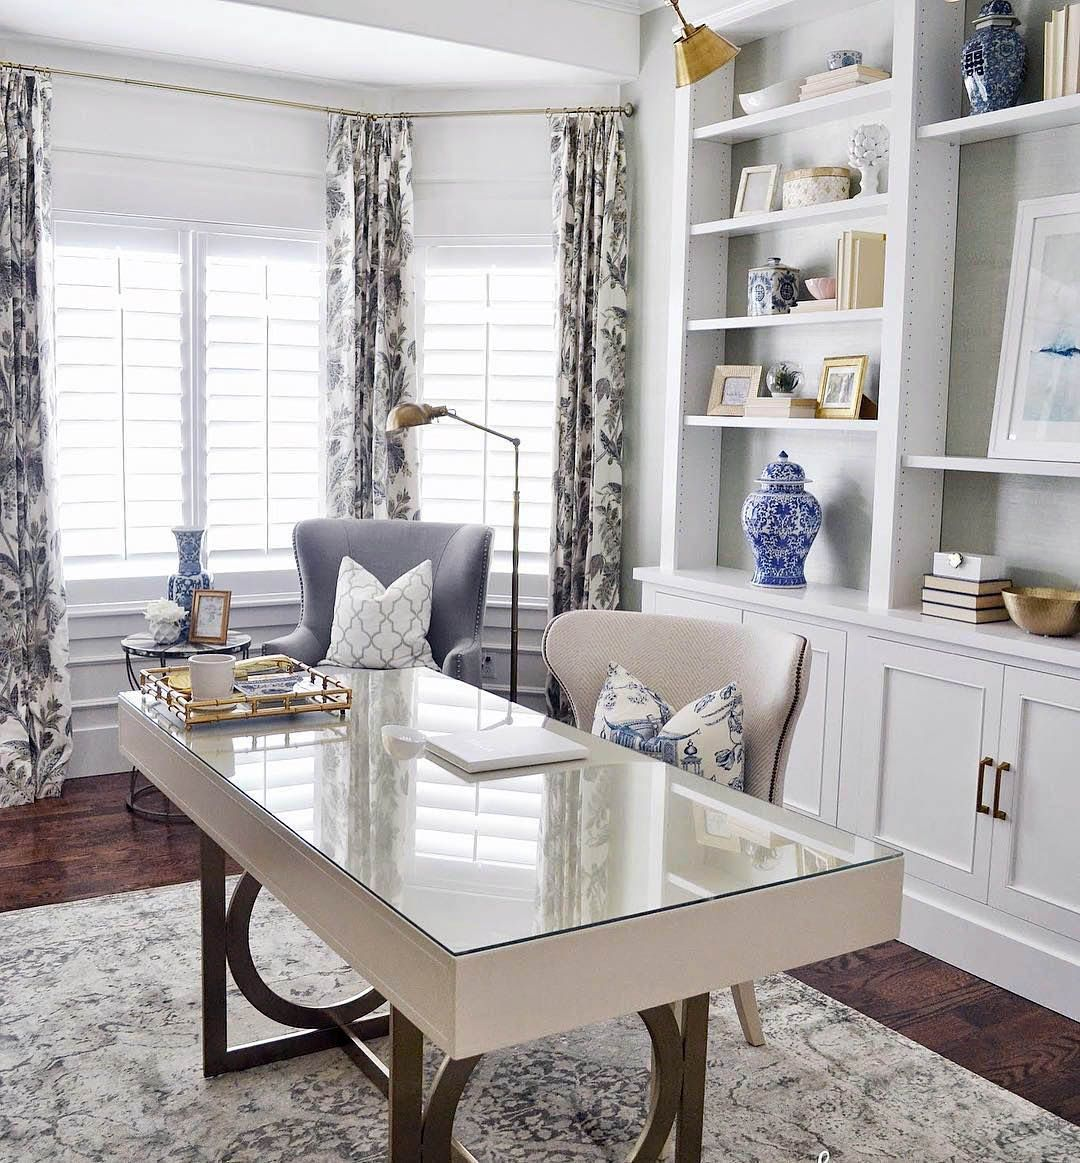 Homeoffice Furniture Design: Primary Modern Home Office Escape For Your Cozy Home